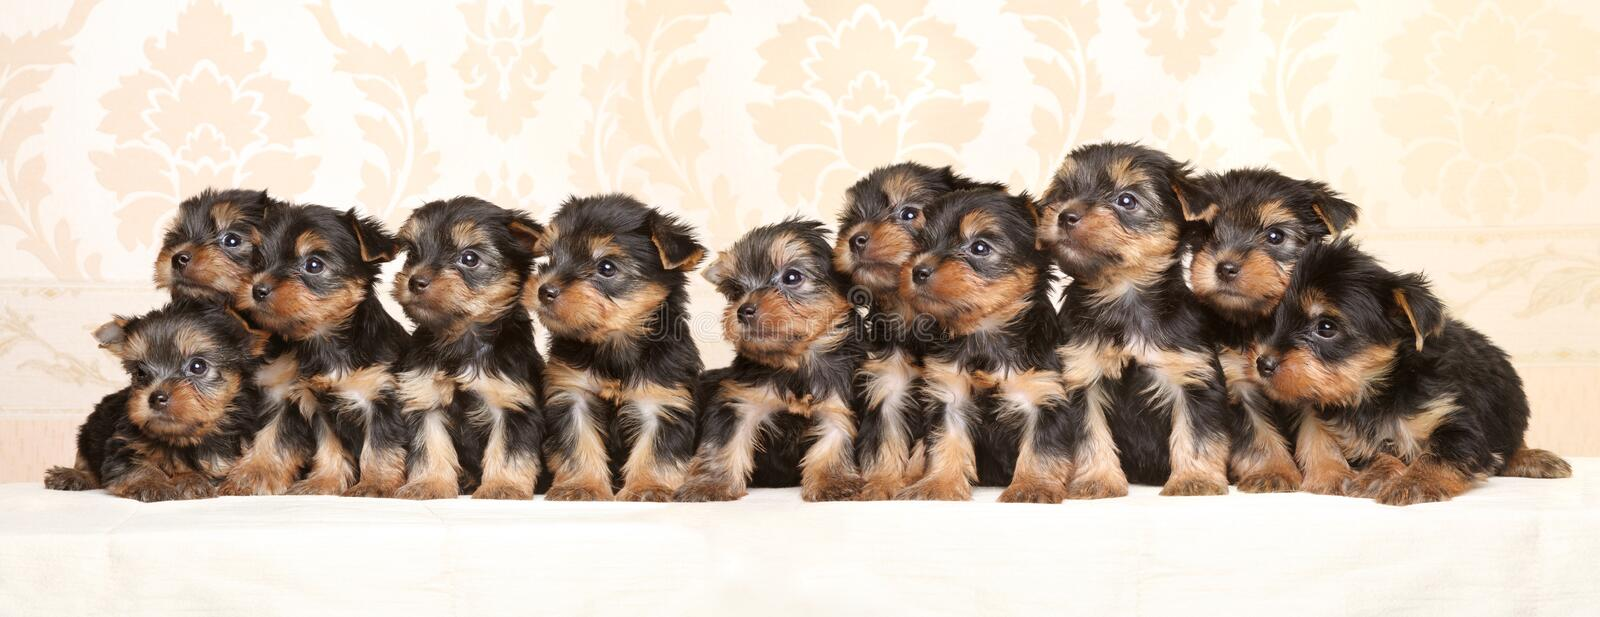 Grand groupe de chiots de Yorkshire Terrier image libre de droits